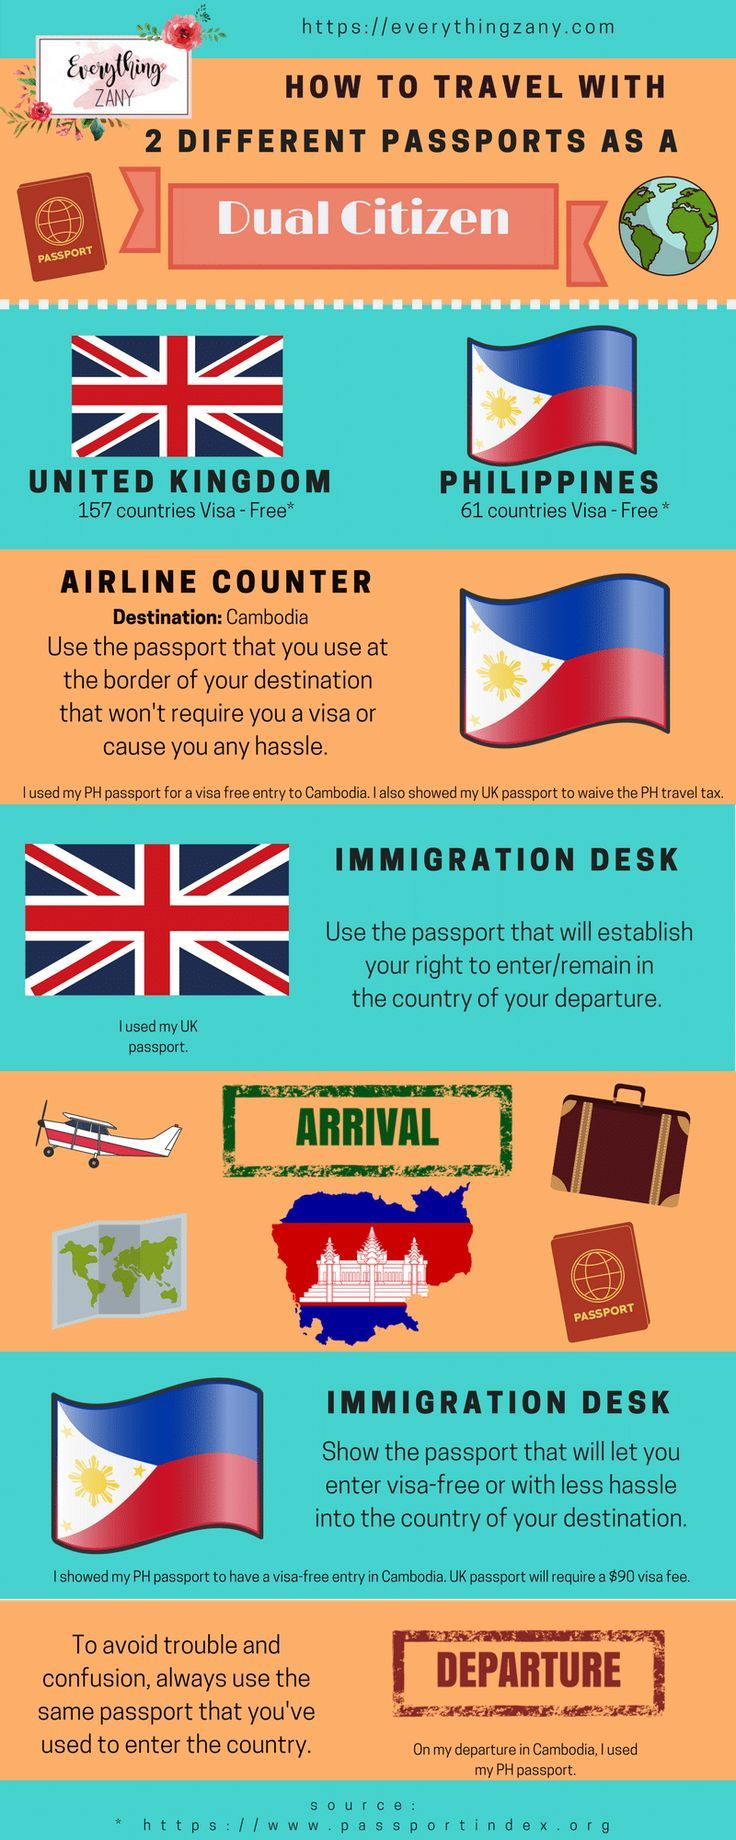 How To Travel With Two Different Passports As A Dual Citizen  I am privileged enough to become a dual citizen of the UK and the Philippines. No, I'm not a spy nor a special agent that has multiple passports and identities (nope, not technically).   I can say that I have the best of both worlds (the East and West). My Philippine citizenship is my birthright, and I acquired my British citizenship through naturalisation.